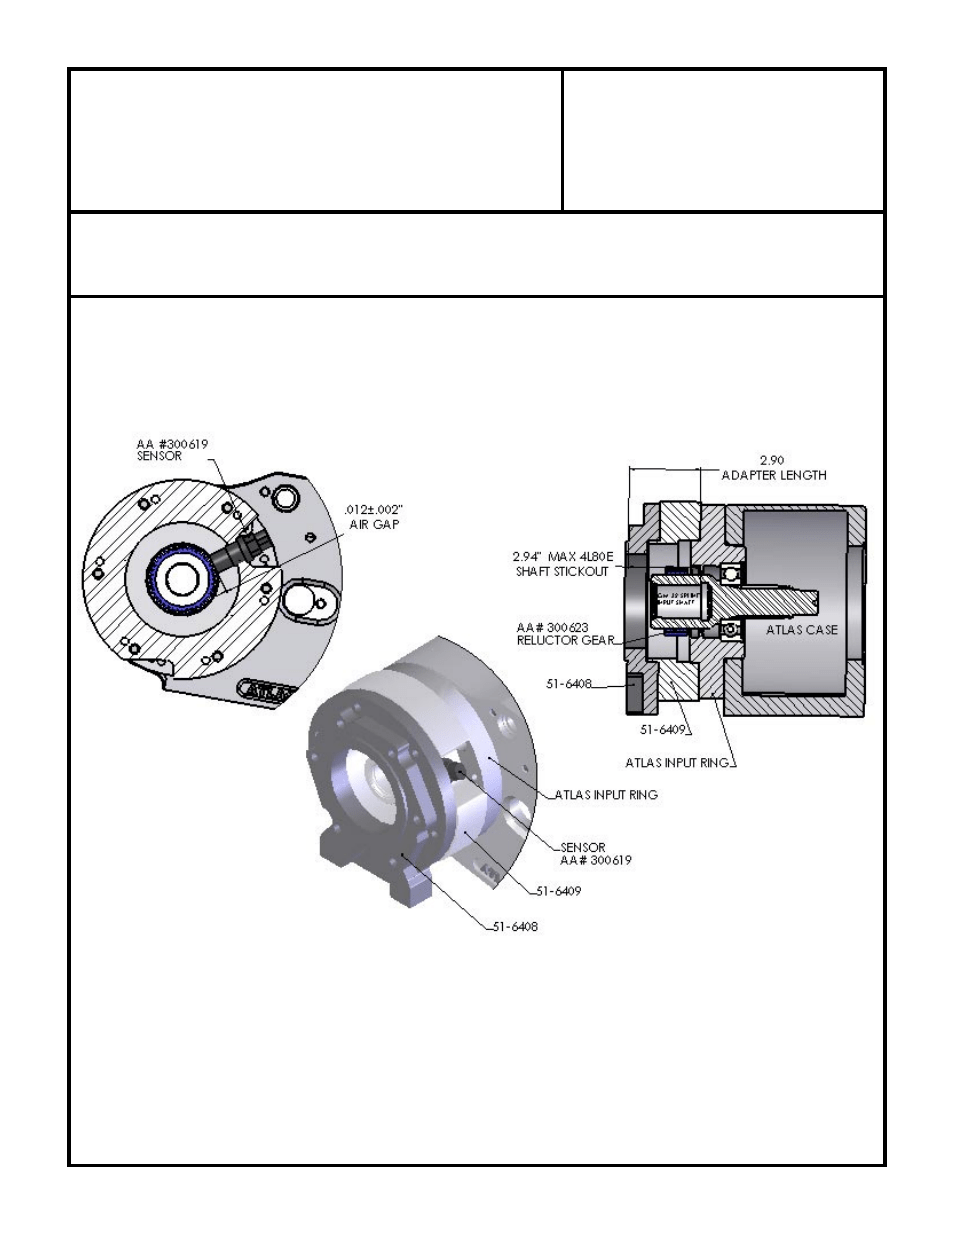 hight resolution of gm 4l80e automatic to atlas 2 speed transfer case advance adapters 50 6409 user manual page 2 2